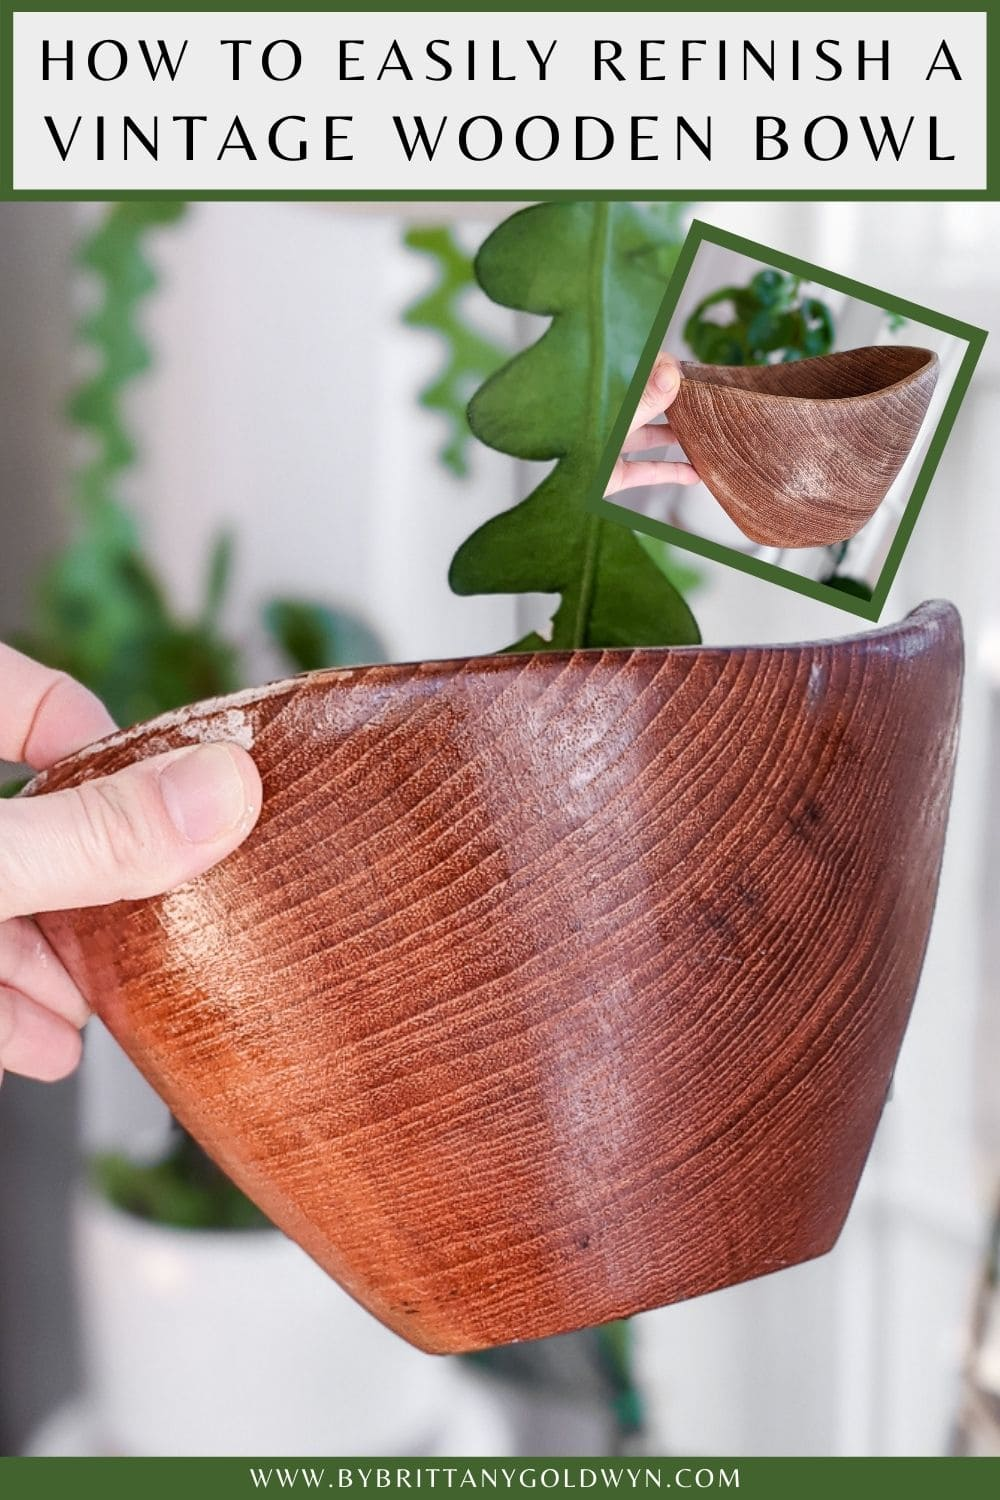 pinnable graphic with images of a polished wooden bowl with text overlay about how to refinish a vintage wooden bowl